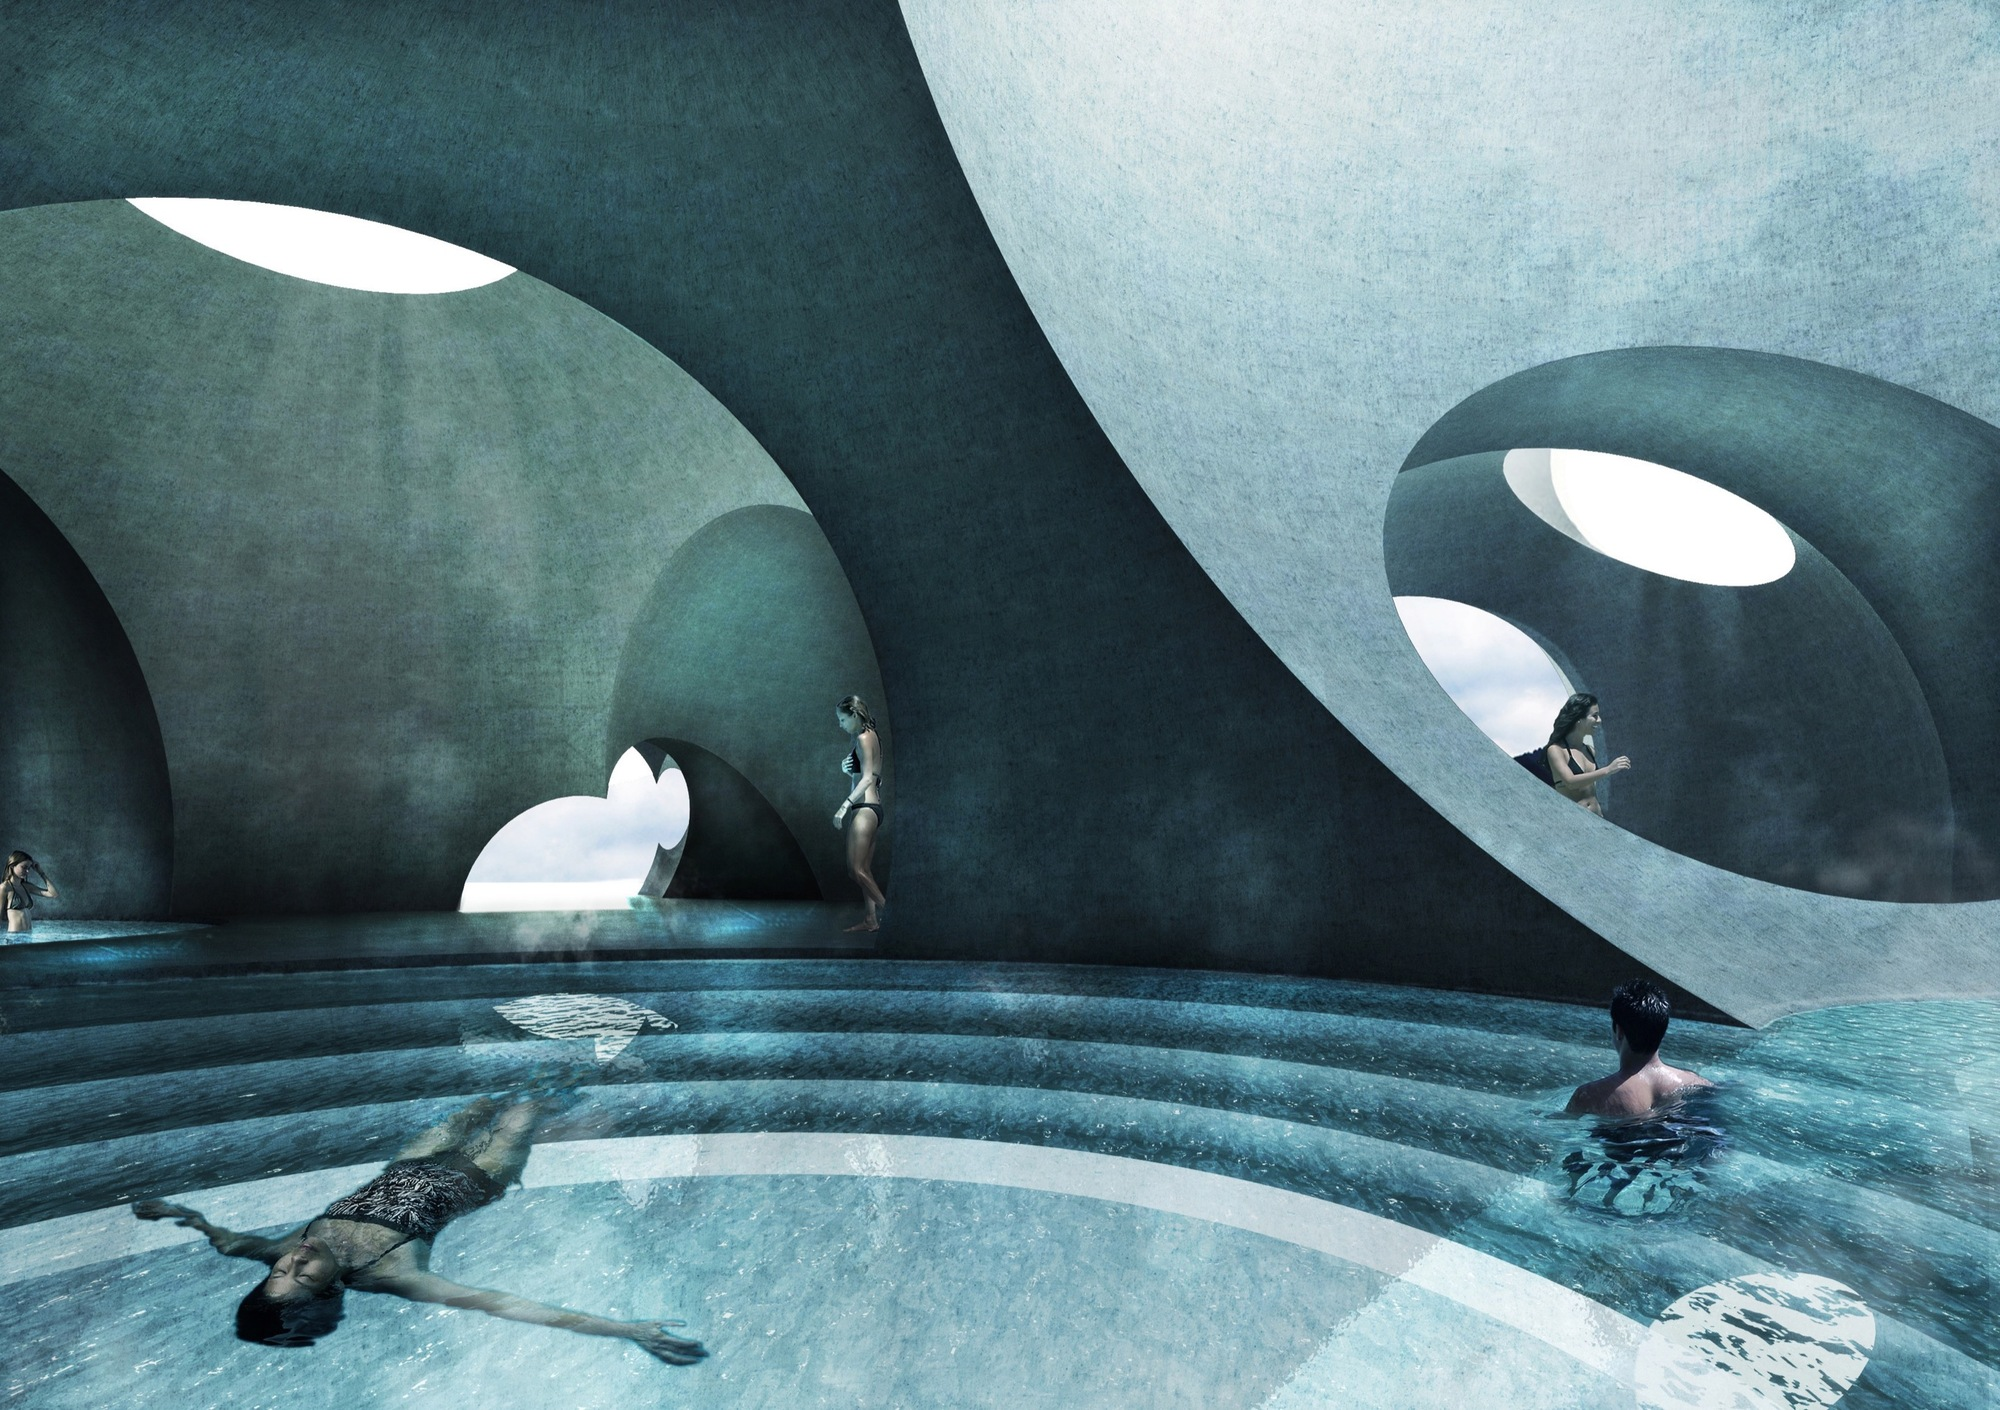 Steven Christensen Architecture Wins AAP Award with Liepāja Thermal Bath and Hotel